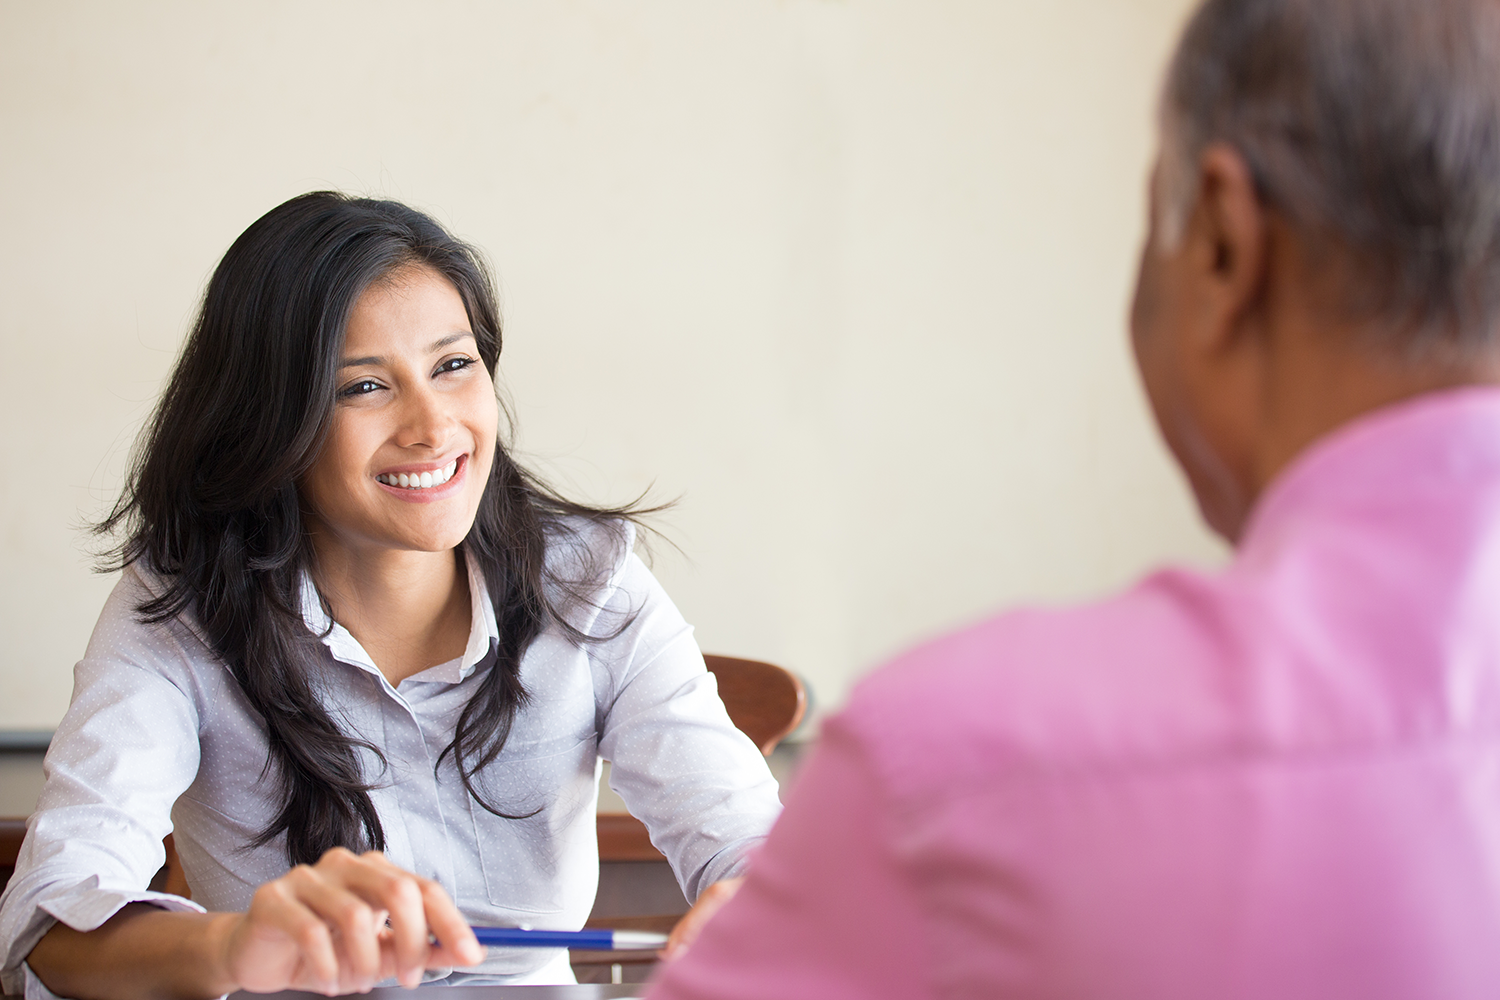 Exclusive interview preparation improves your soft skills